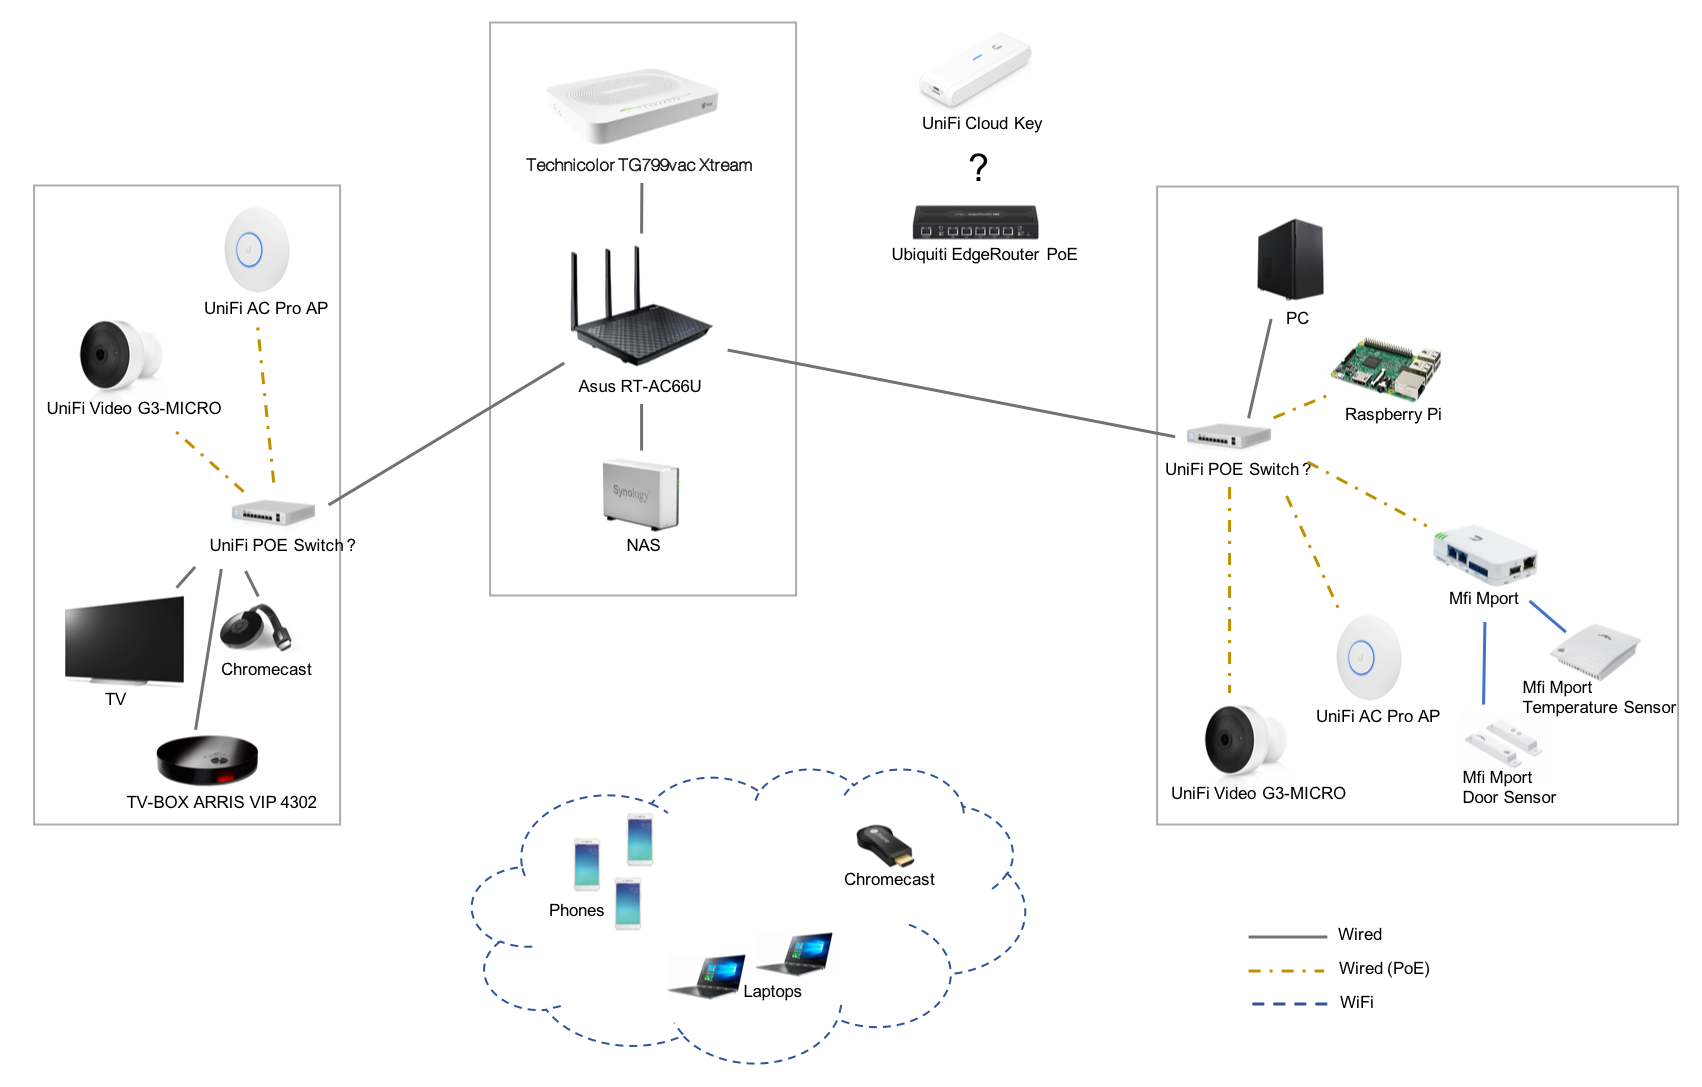 Need help with setup of home network | Ubiquiti Community